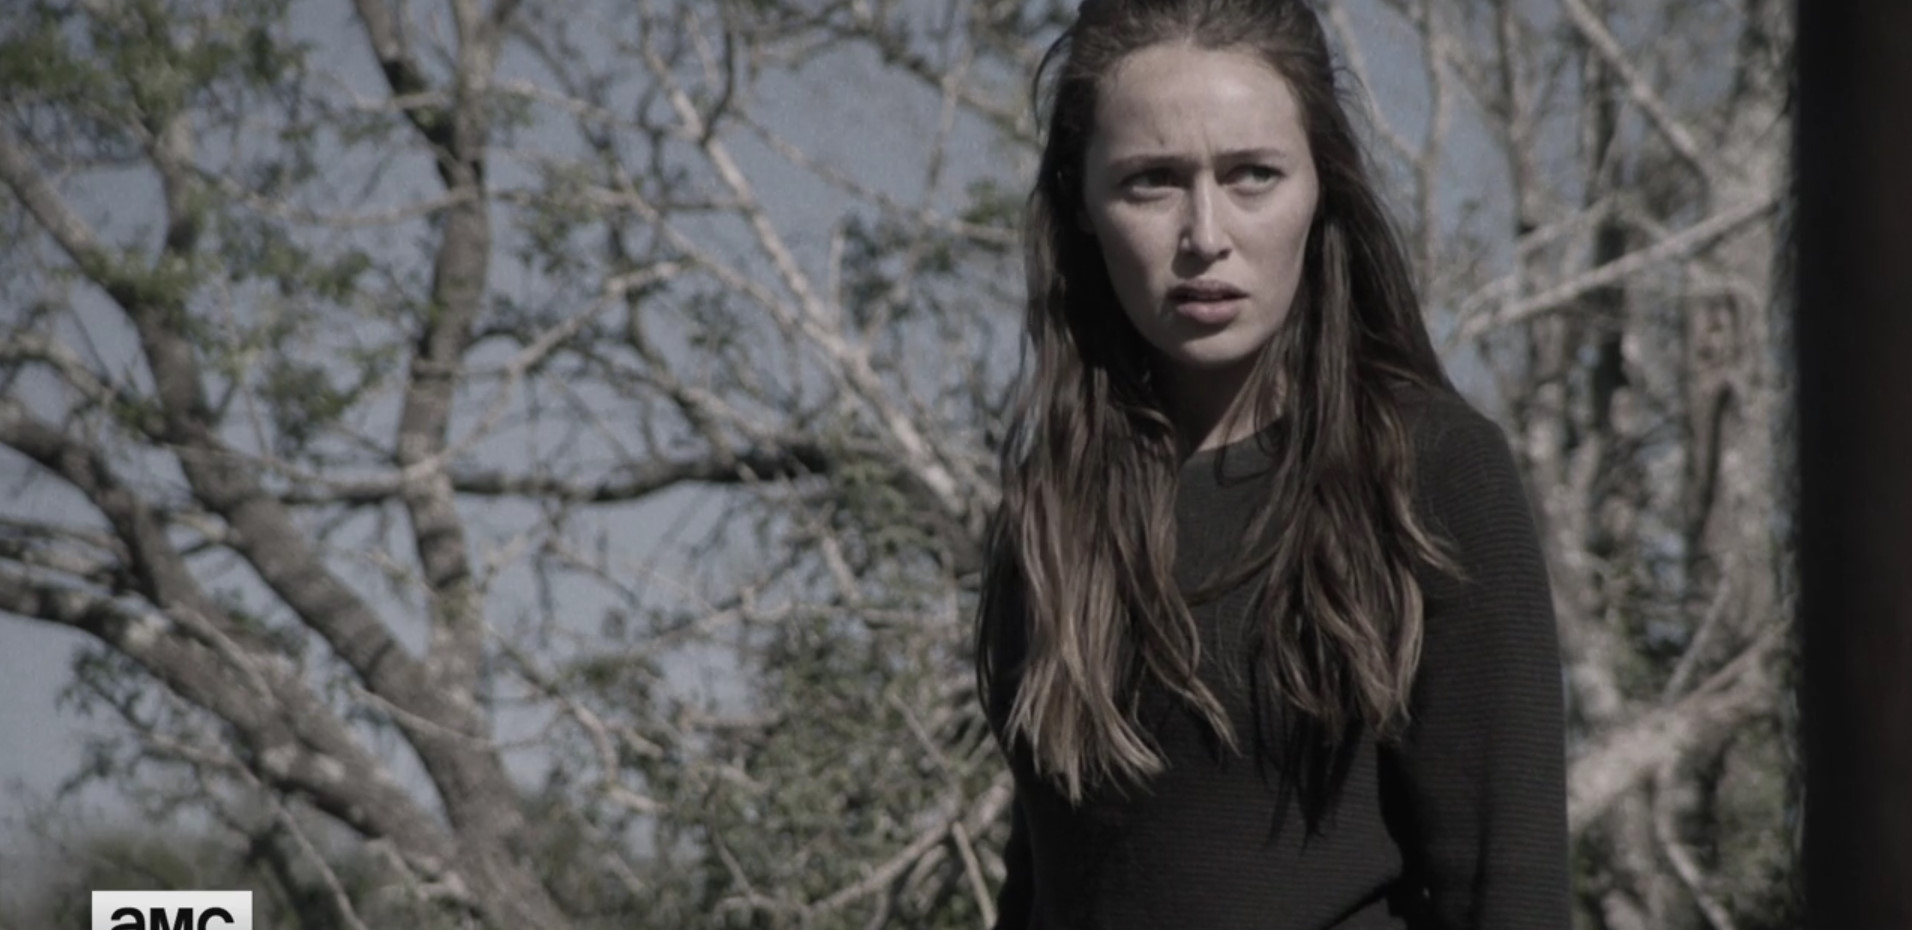 Press/Videos: Alicia Gets an Invitation to Alexandria in This Fear the Walking Dead Sneak Peek